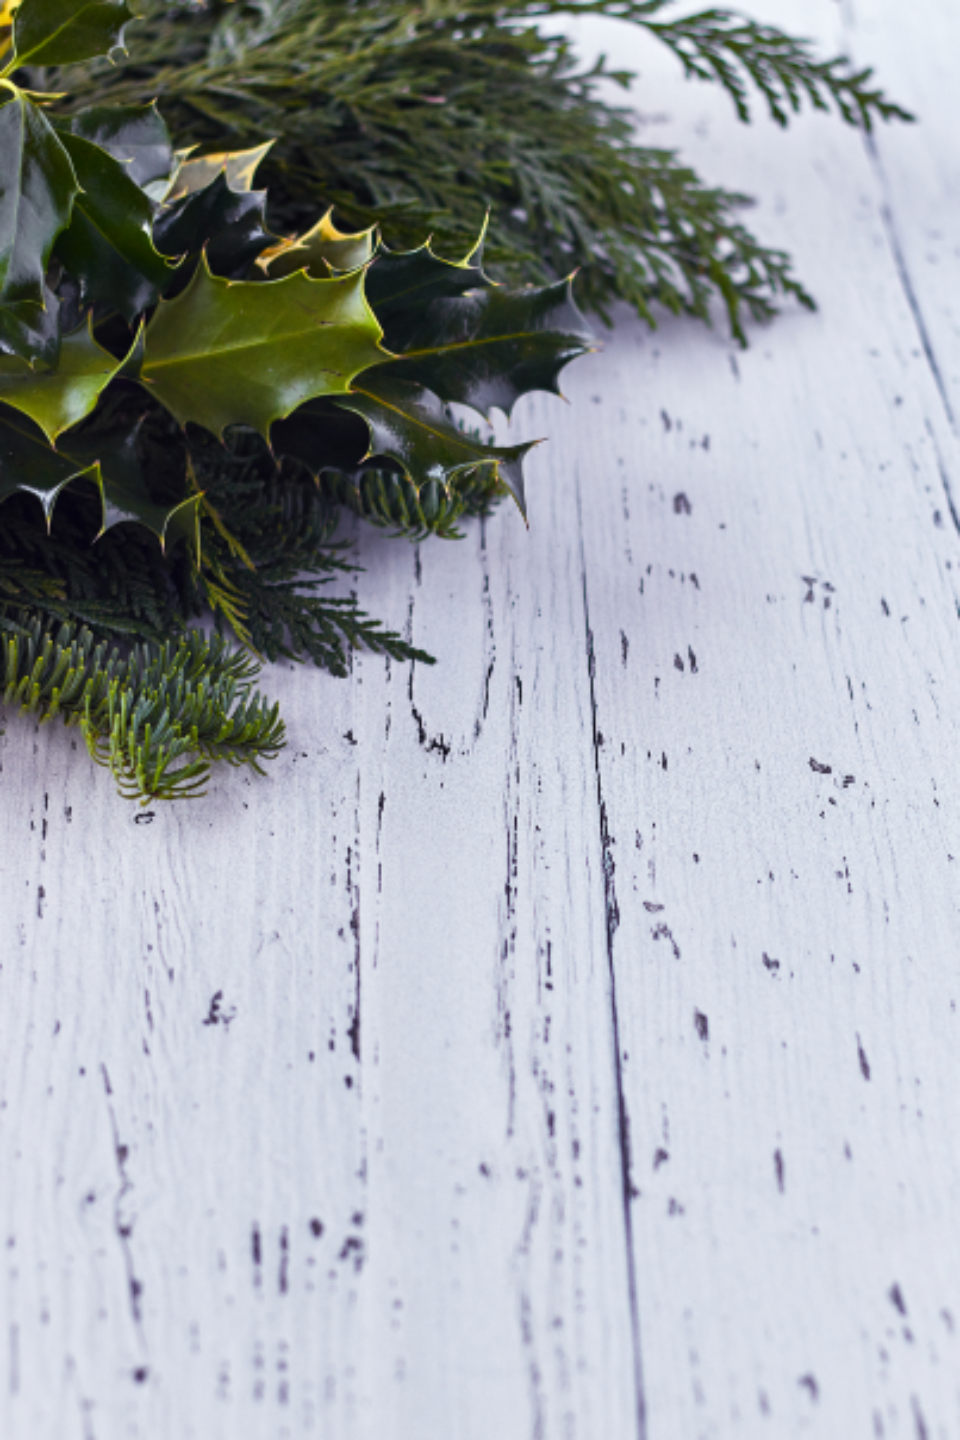 holly seasonal background christmas winter rustic wood green branch decorative xmas holiday copyspace decoration texture